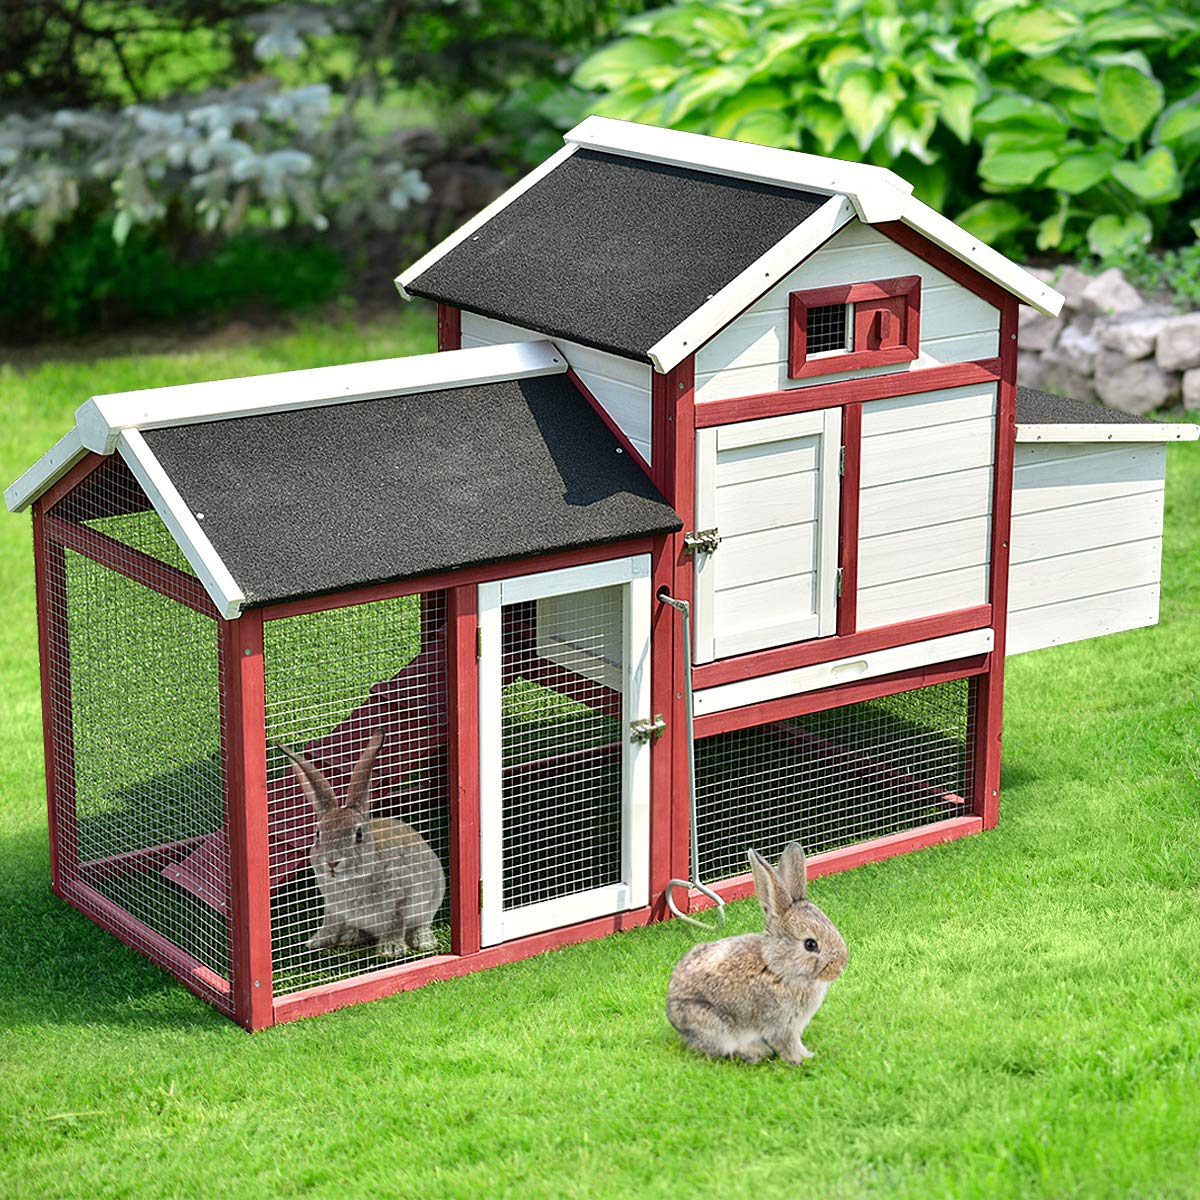 Tangkula 60'' Large Rabbit Hutch Wooden White Rabbit Bunny Outdoor Animal Cage Rabbit Hutch House with Black Linoleum Roof by Tangkula (Image #2)